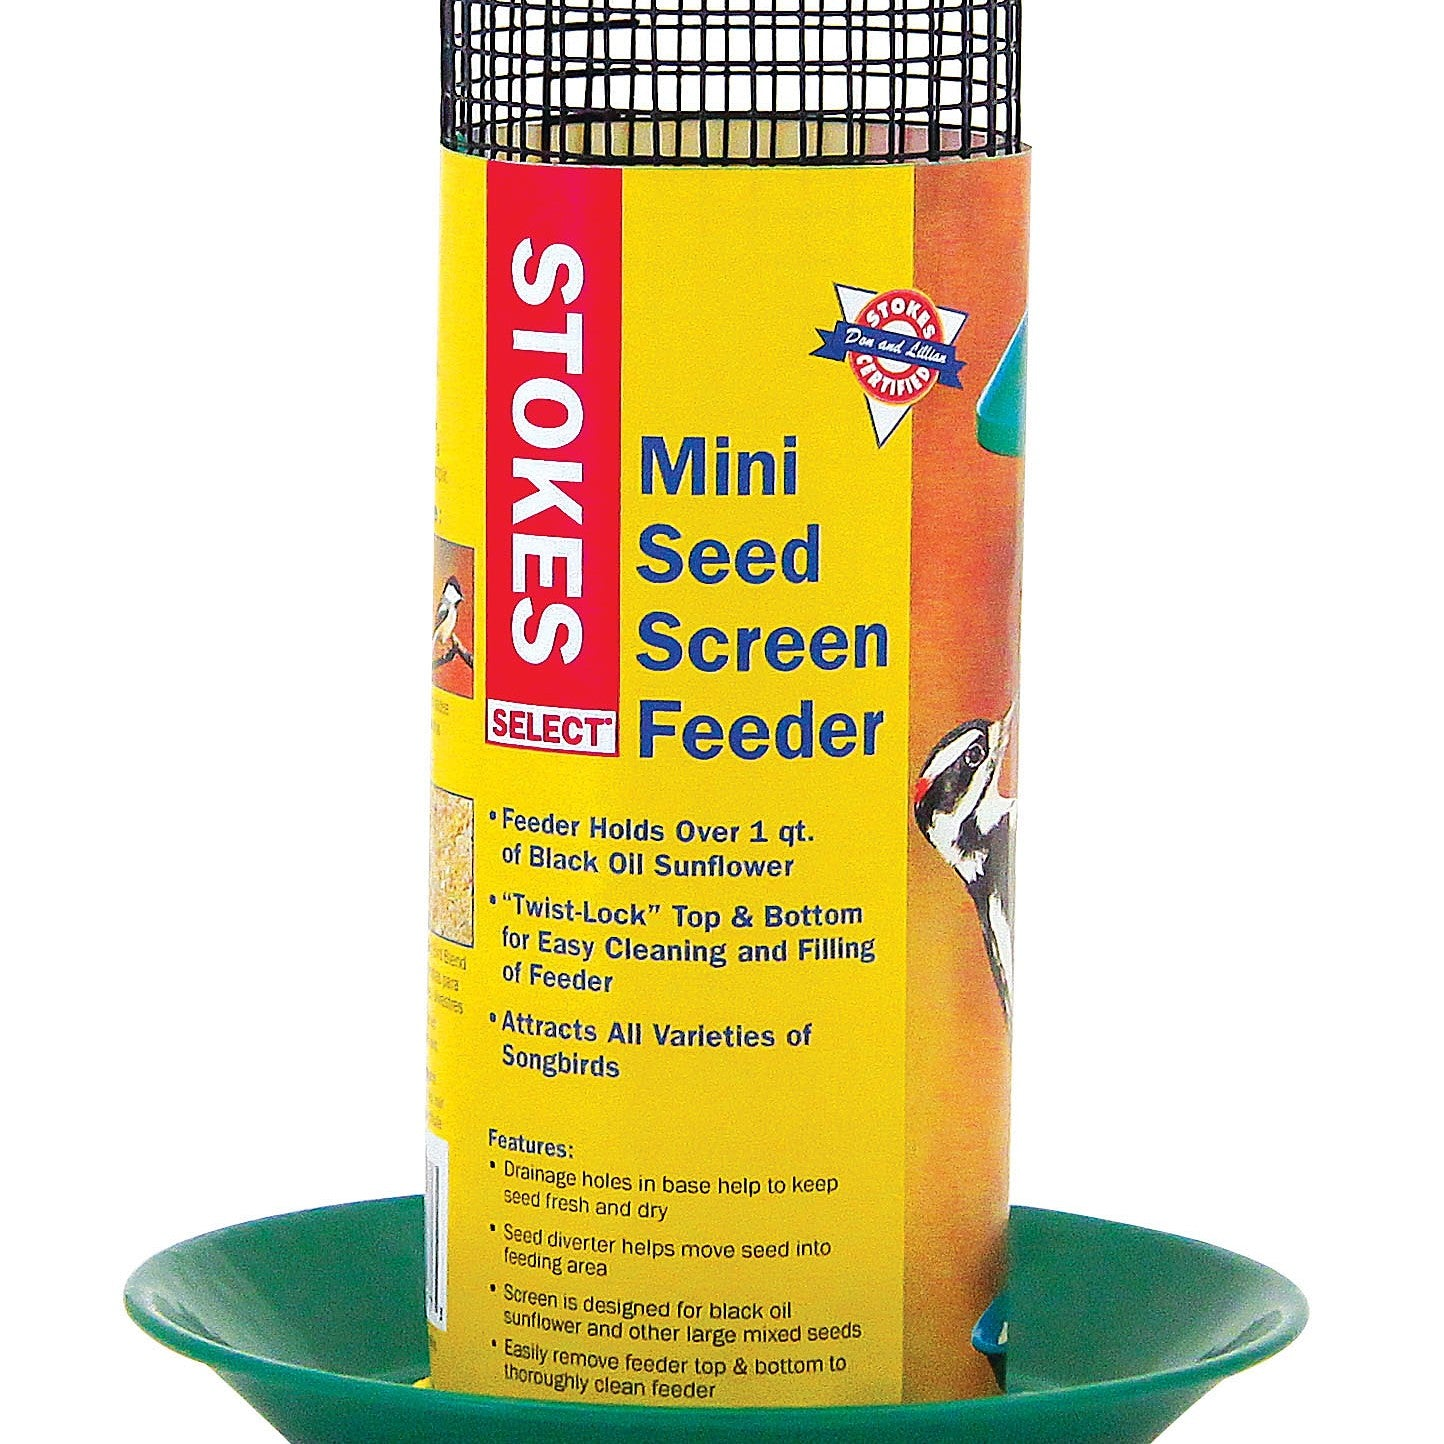 Mini Seed Screen Feeder